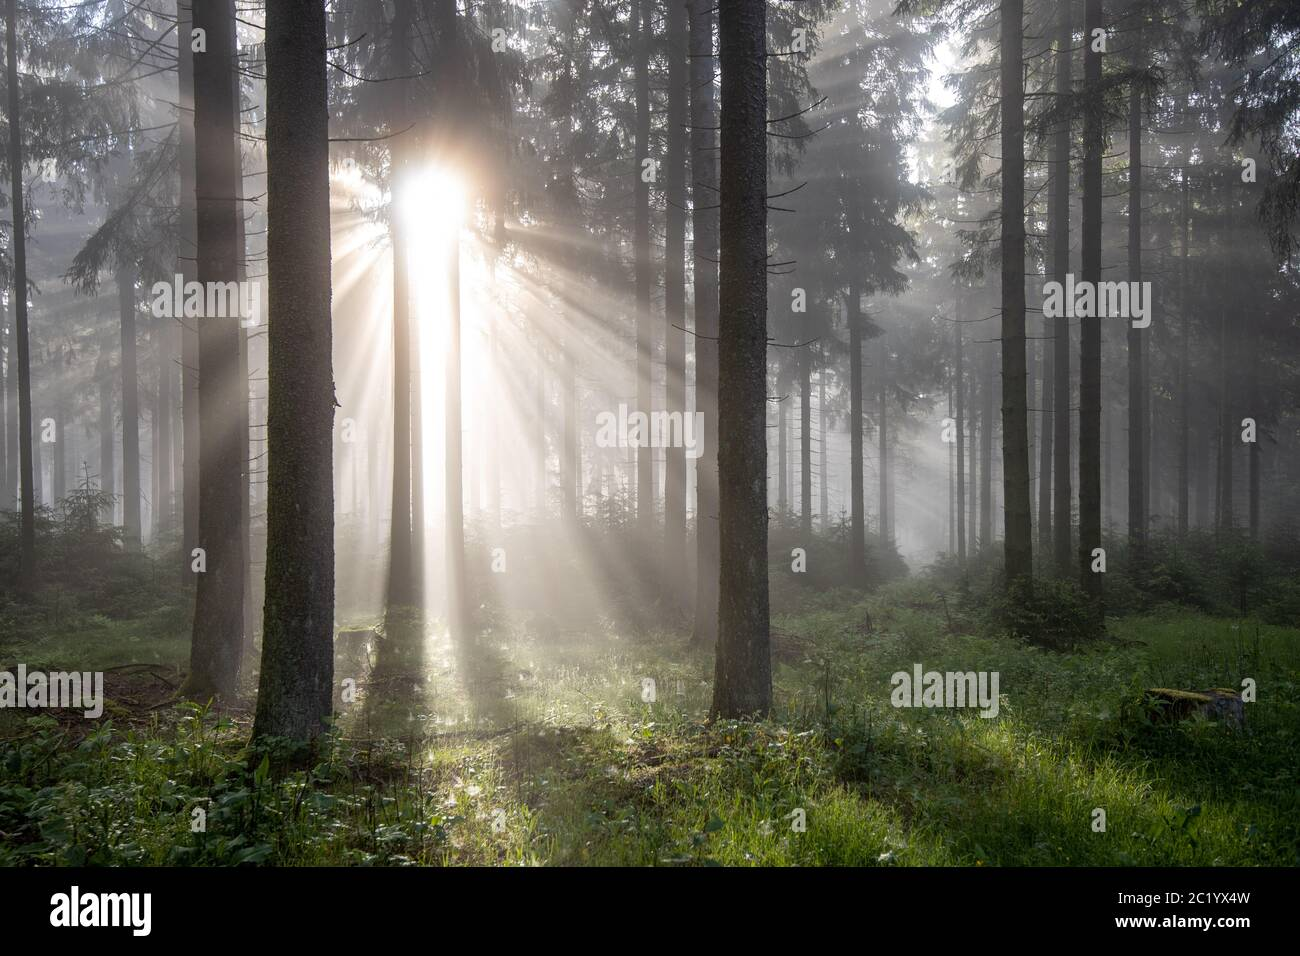 Schwithten, Deutschland. 12th June, 2020. 06/12/2020, Schwithten (Hessen): The rising sun shines through trees in the fog in the forest on the Grosser Feldberg in the Taunus.   usage worldwide Credit: dpa/Alamy Live News Stock Photo